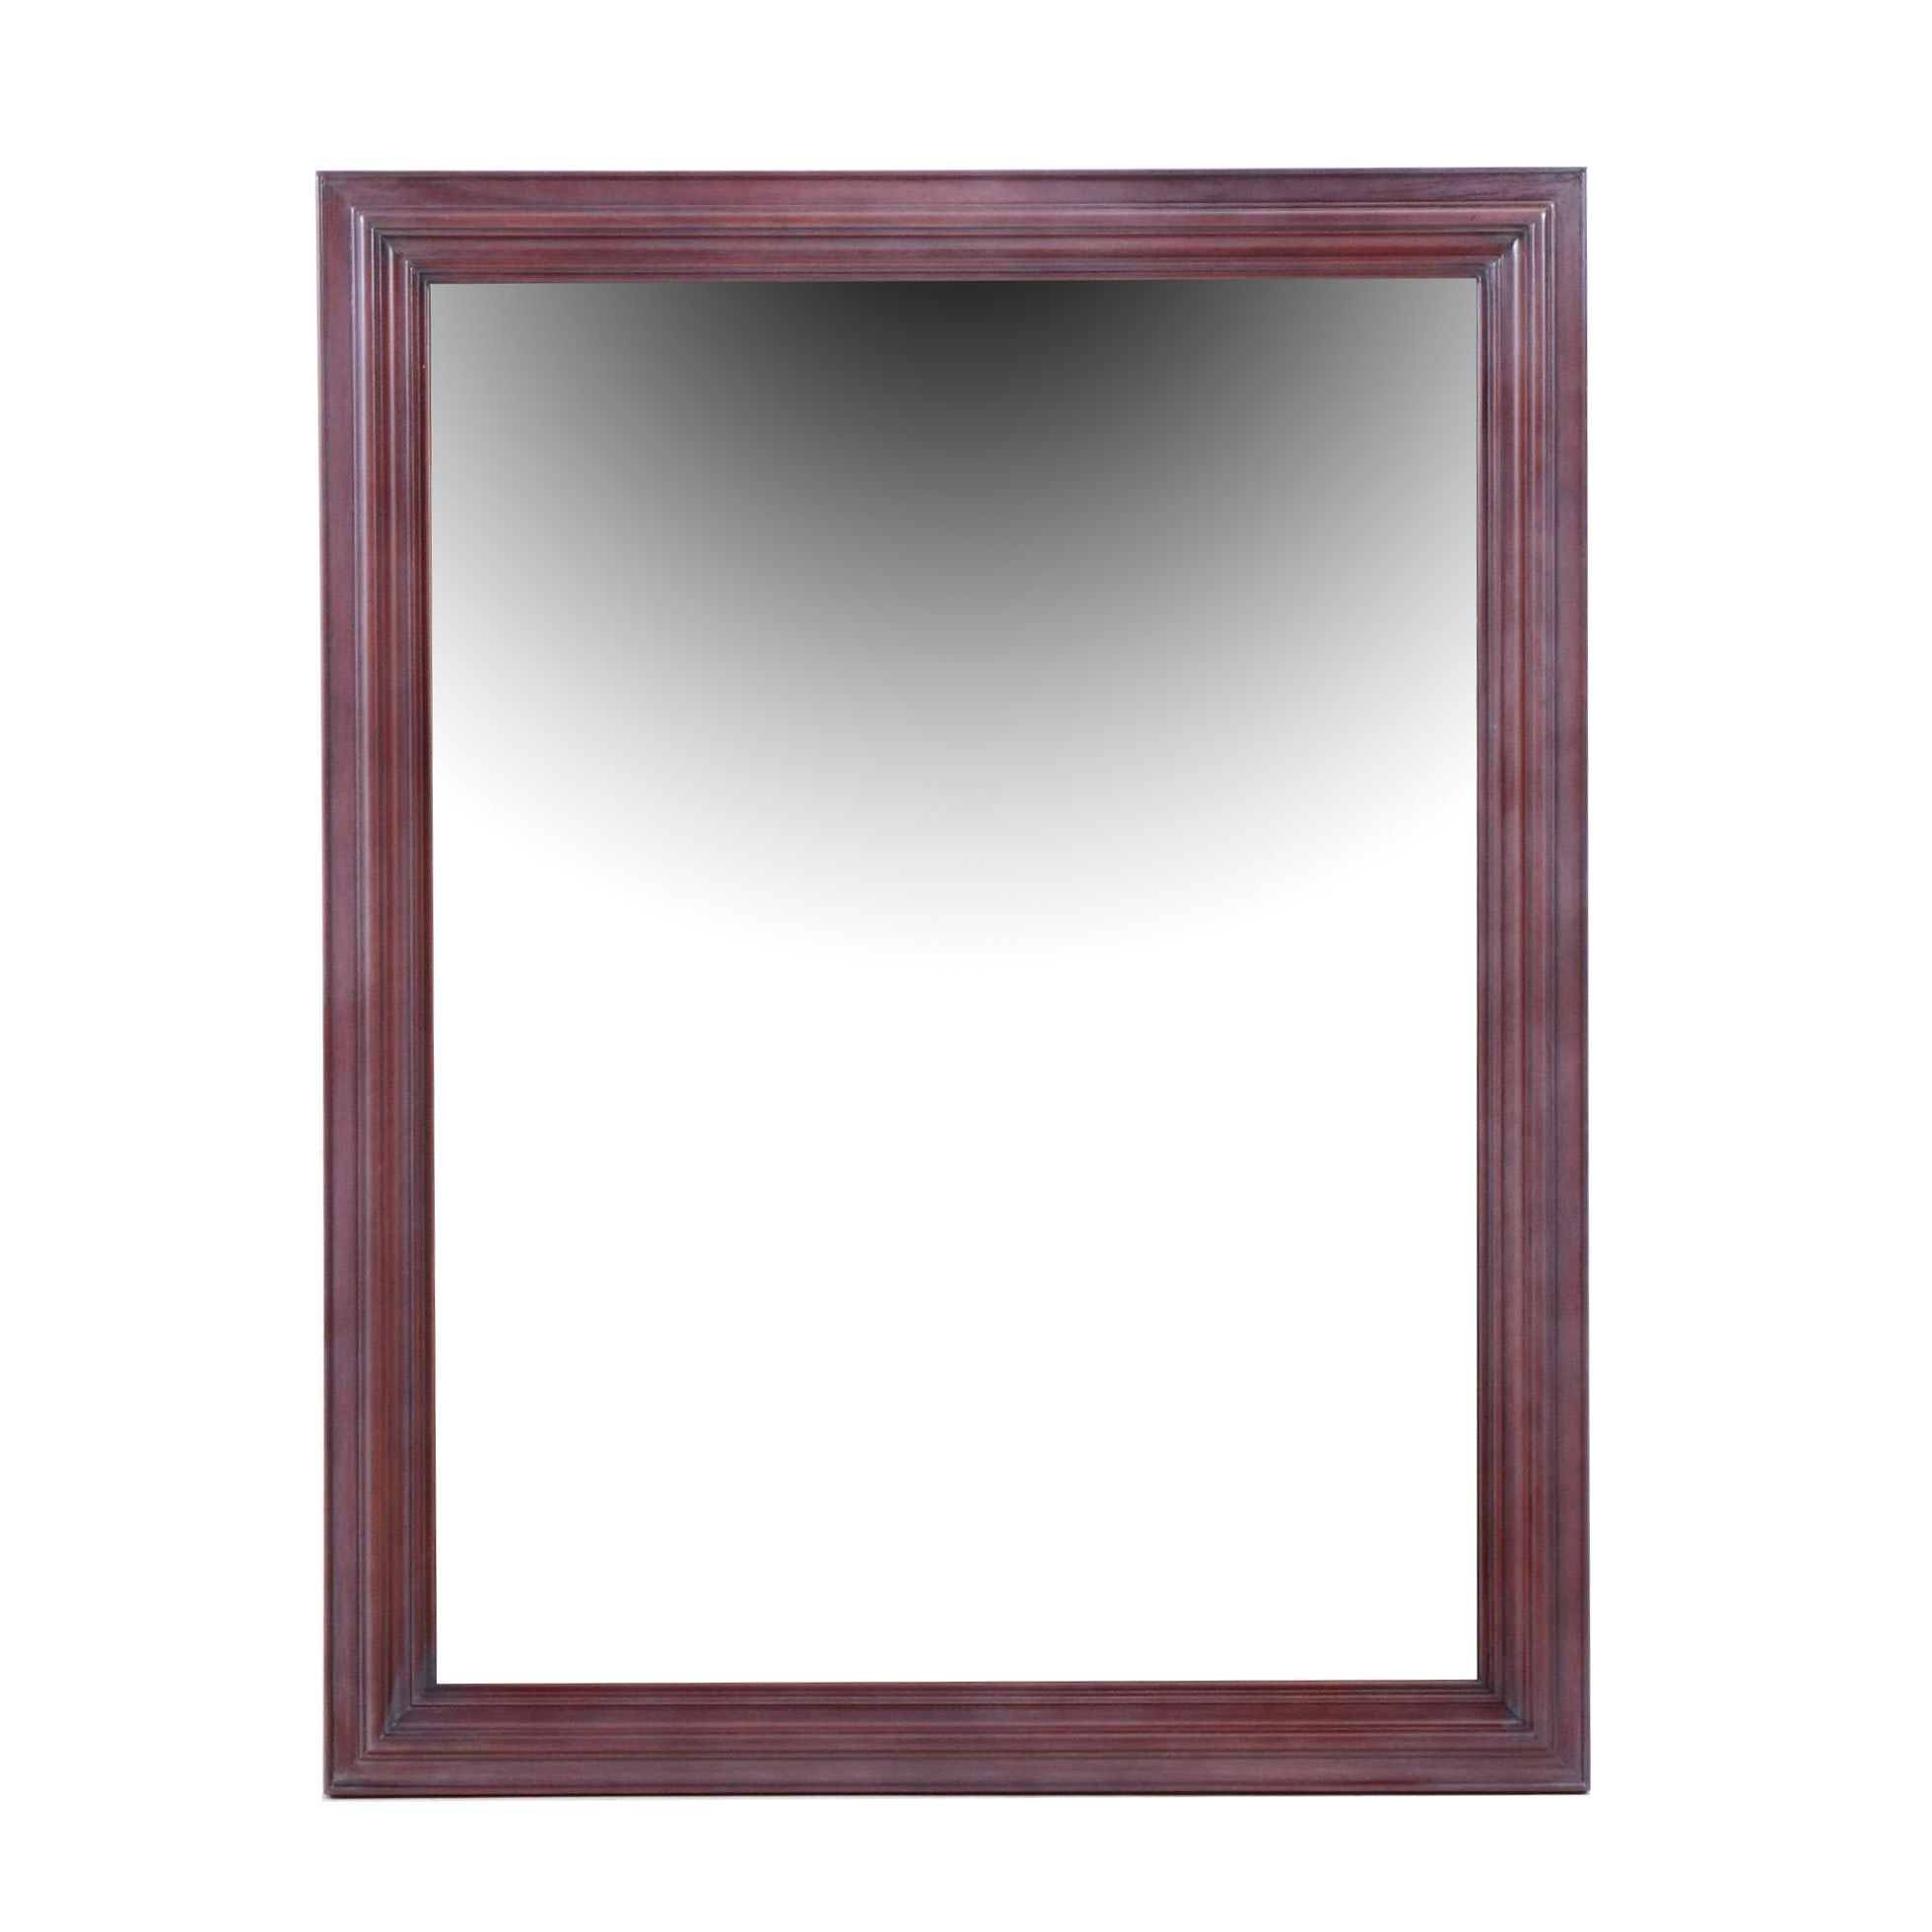 Large Wall Mirror with Cherry Finish Frame